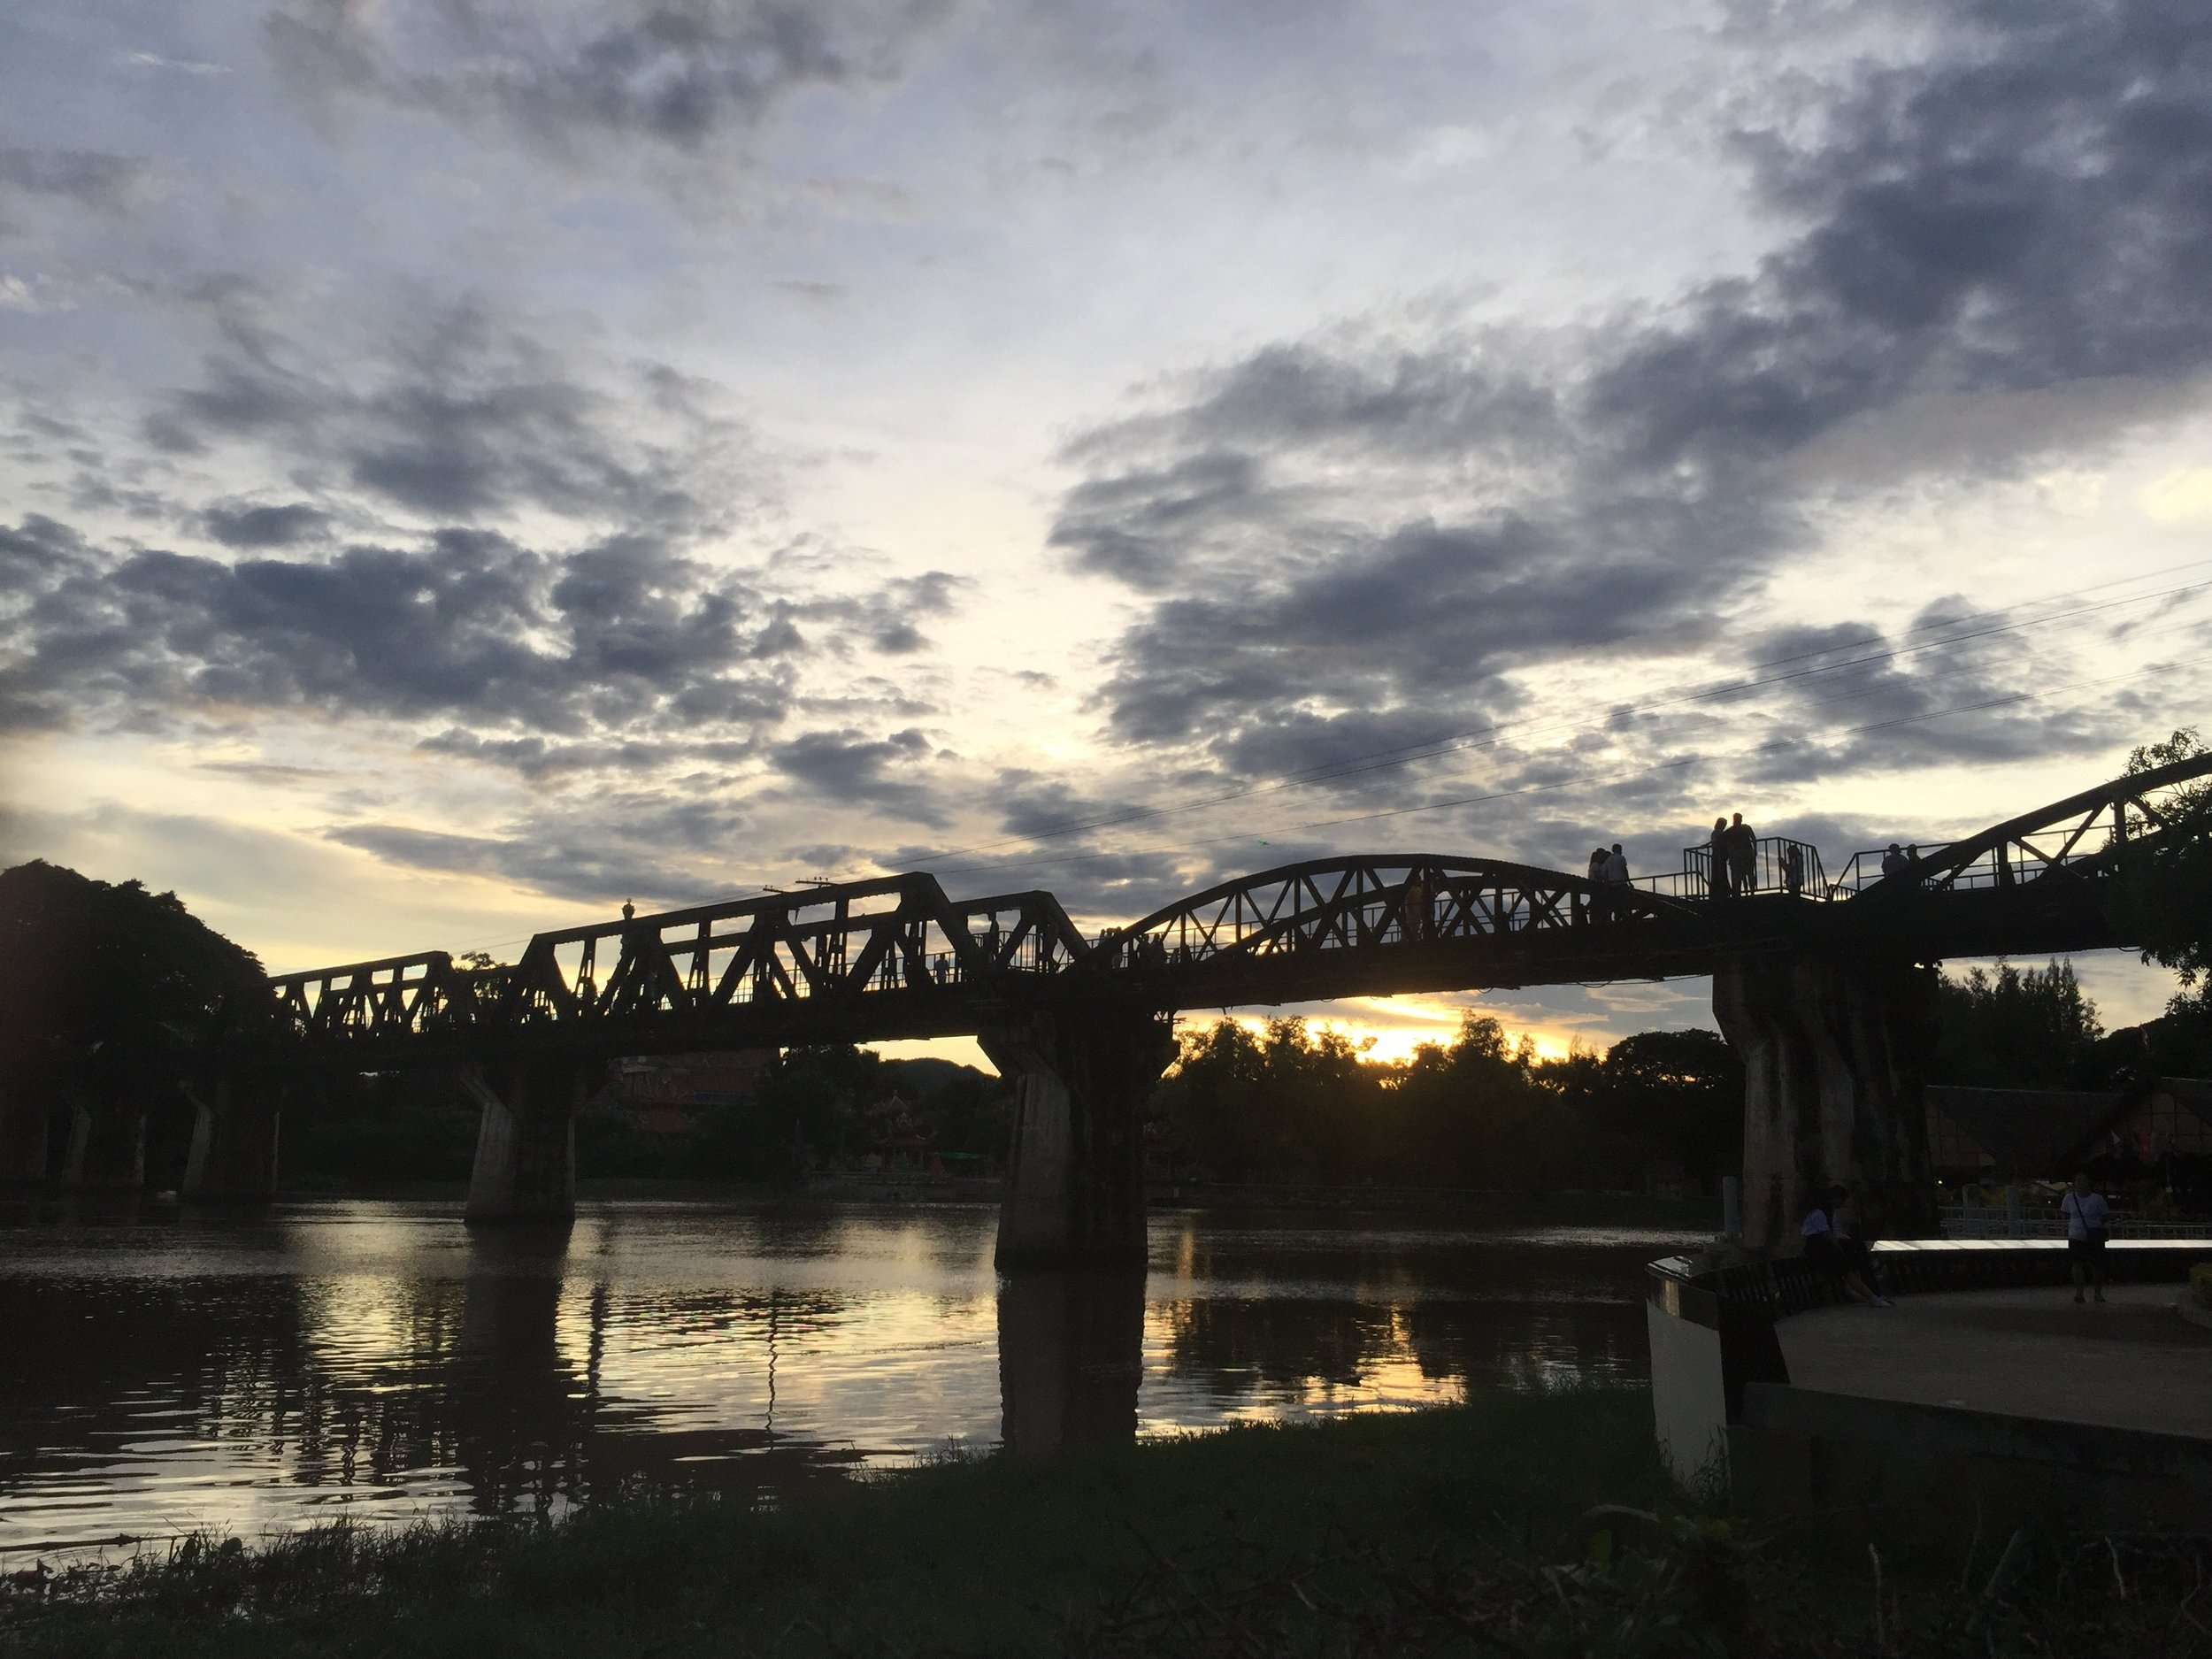 Sunset over the bridge over the River Kwai.